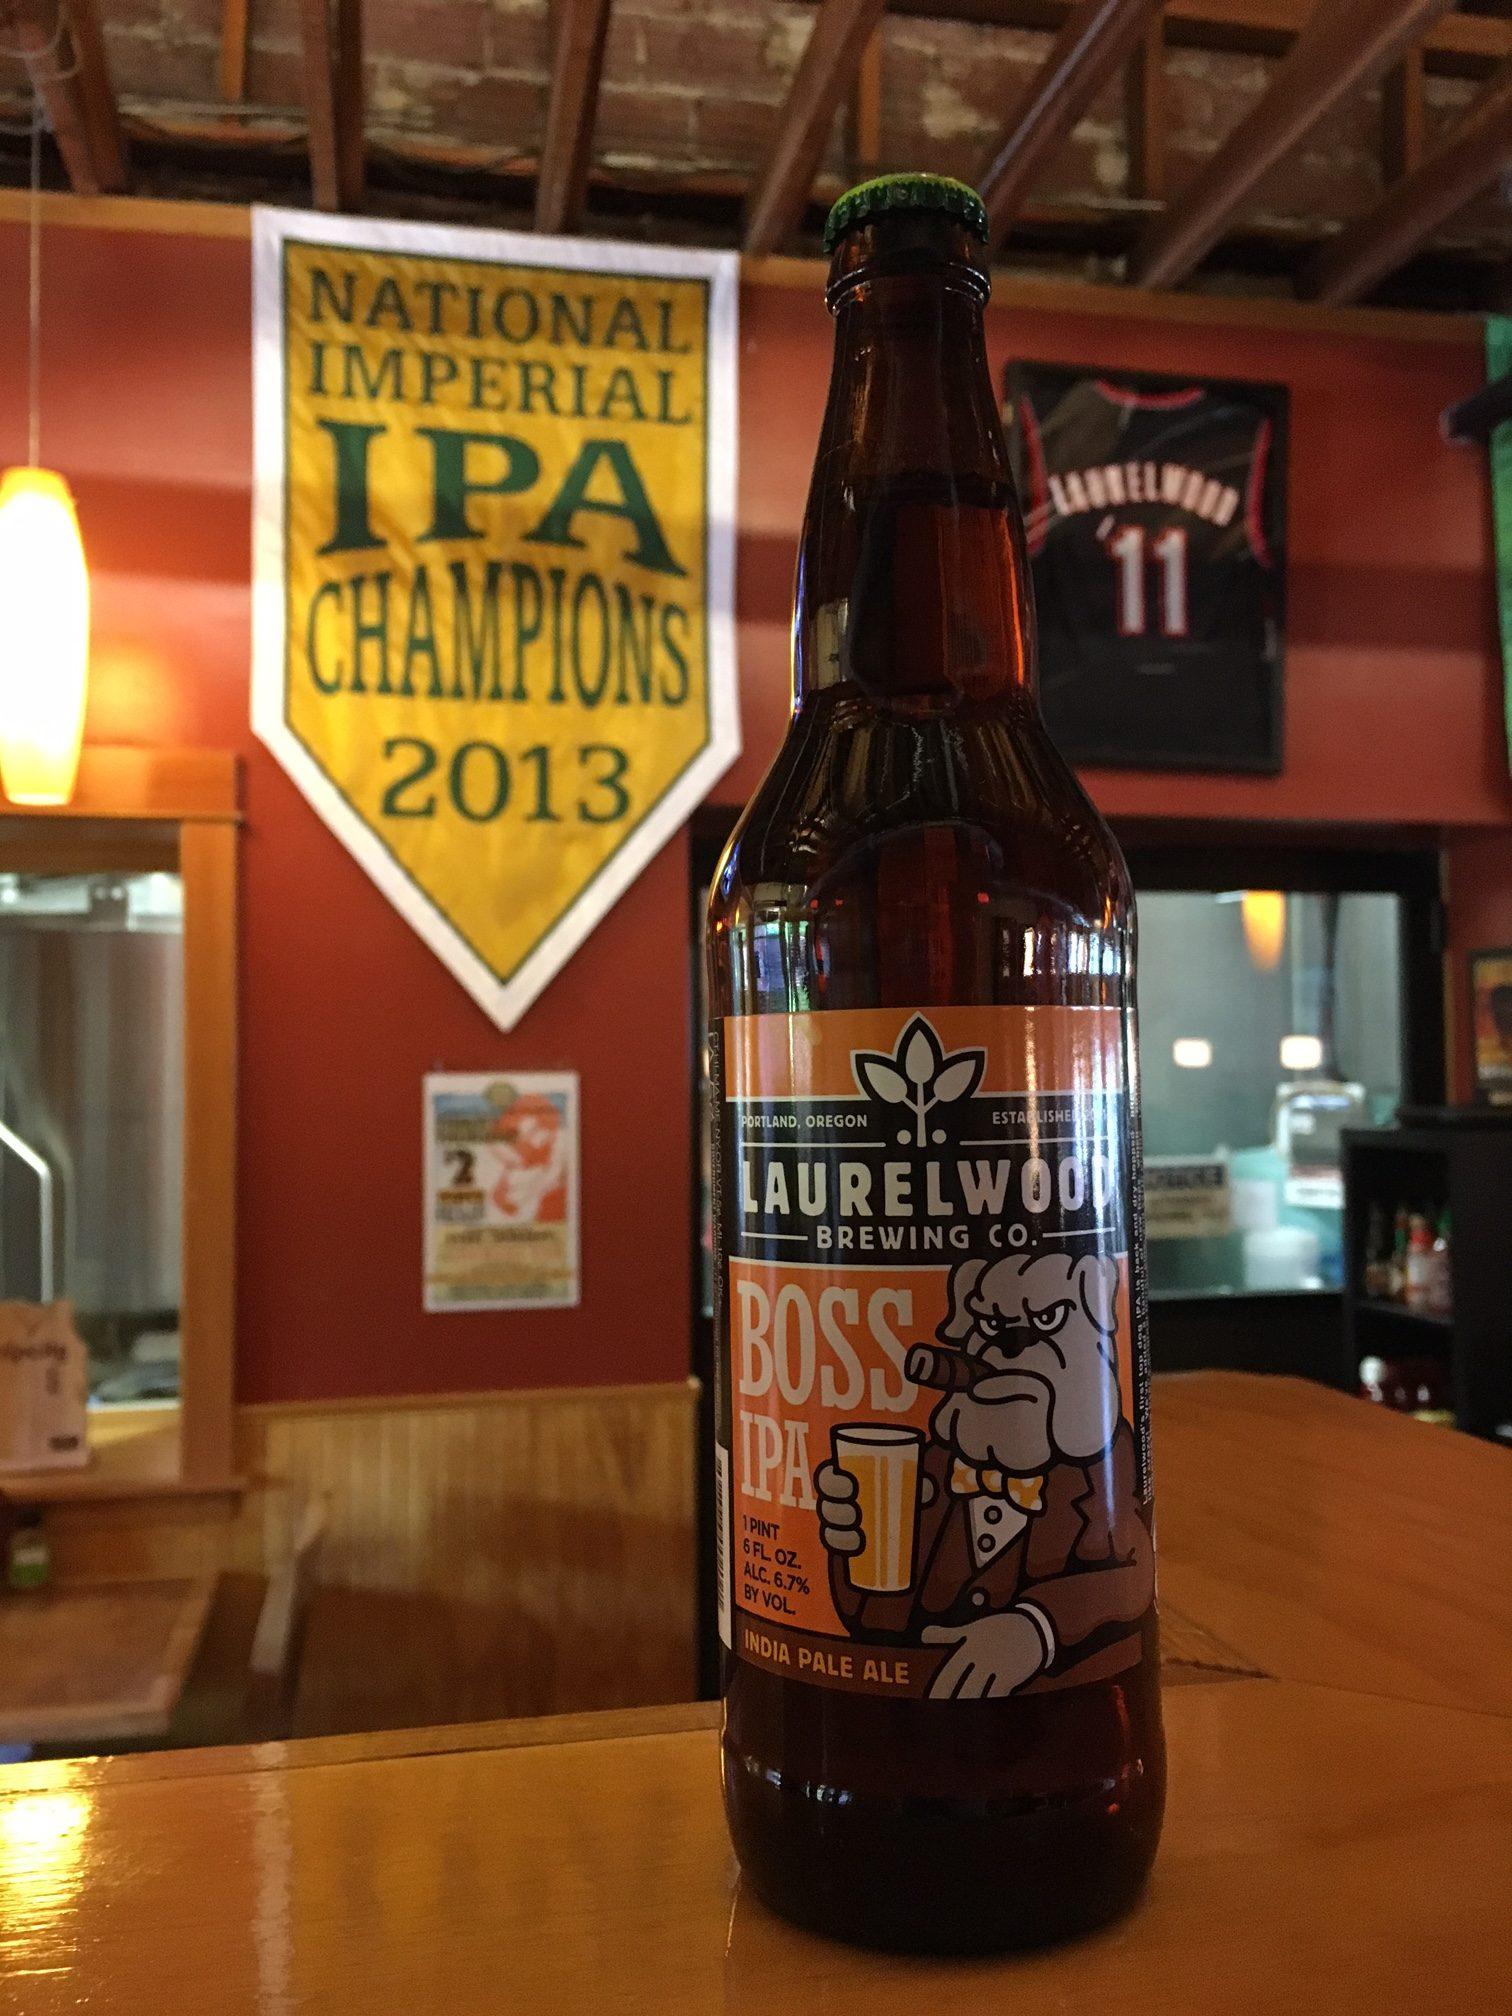 Laurelwood brewing releases its golden ale in six pack for Laurelwood